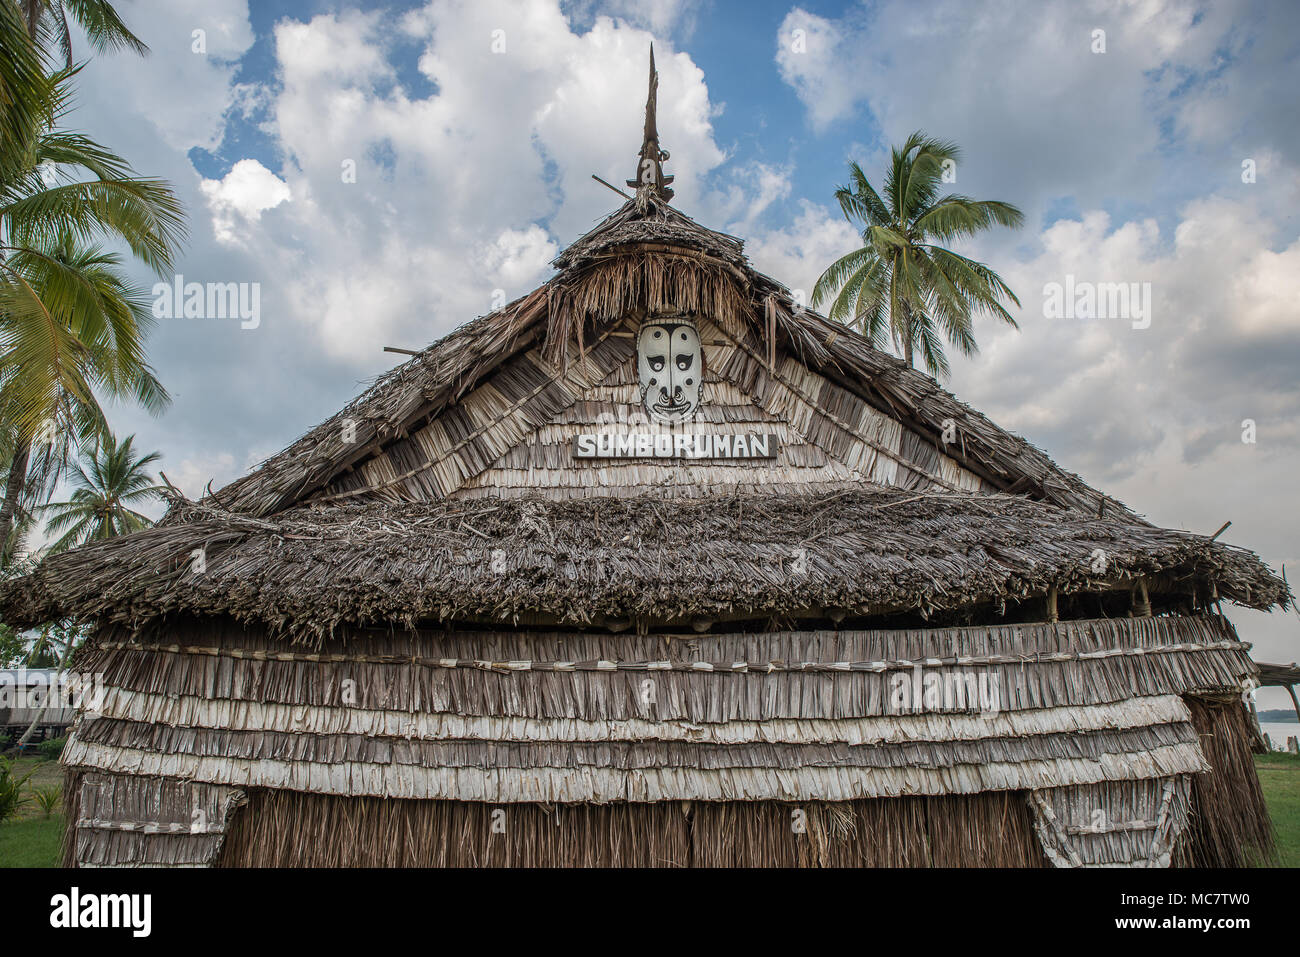 Detail of a wooden masked on the roof of a Haus Tambaran, Korogo Village, Middle Sepik, Papua New Guinea Stock Photo